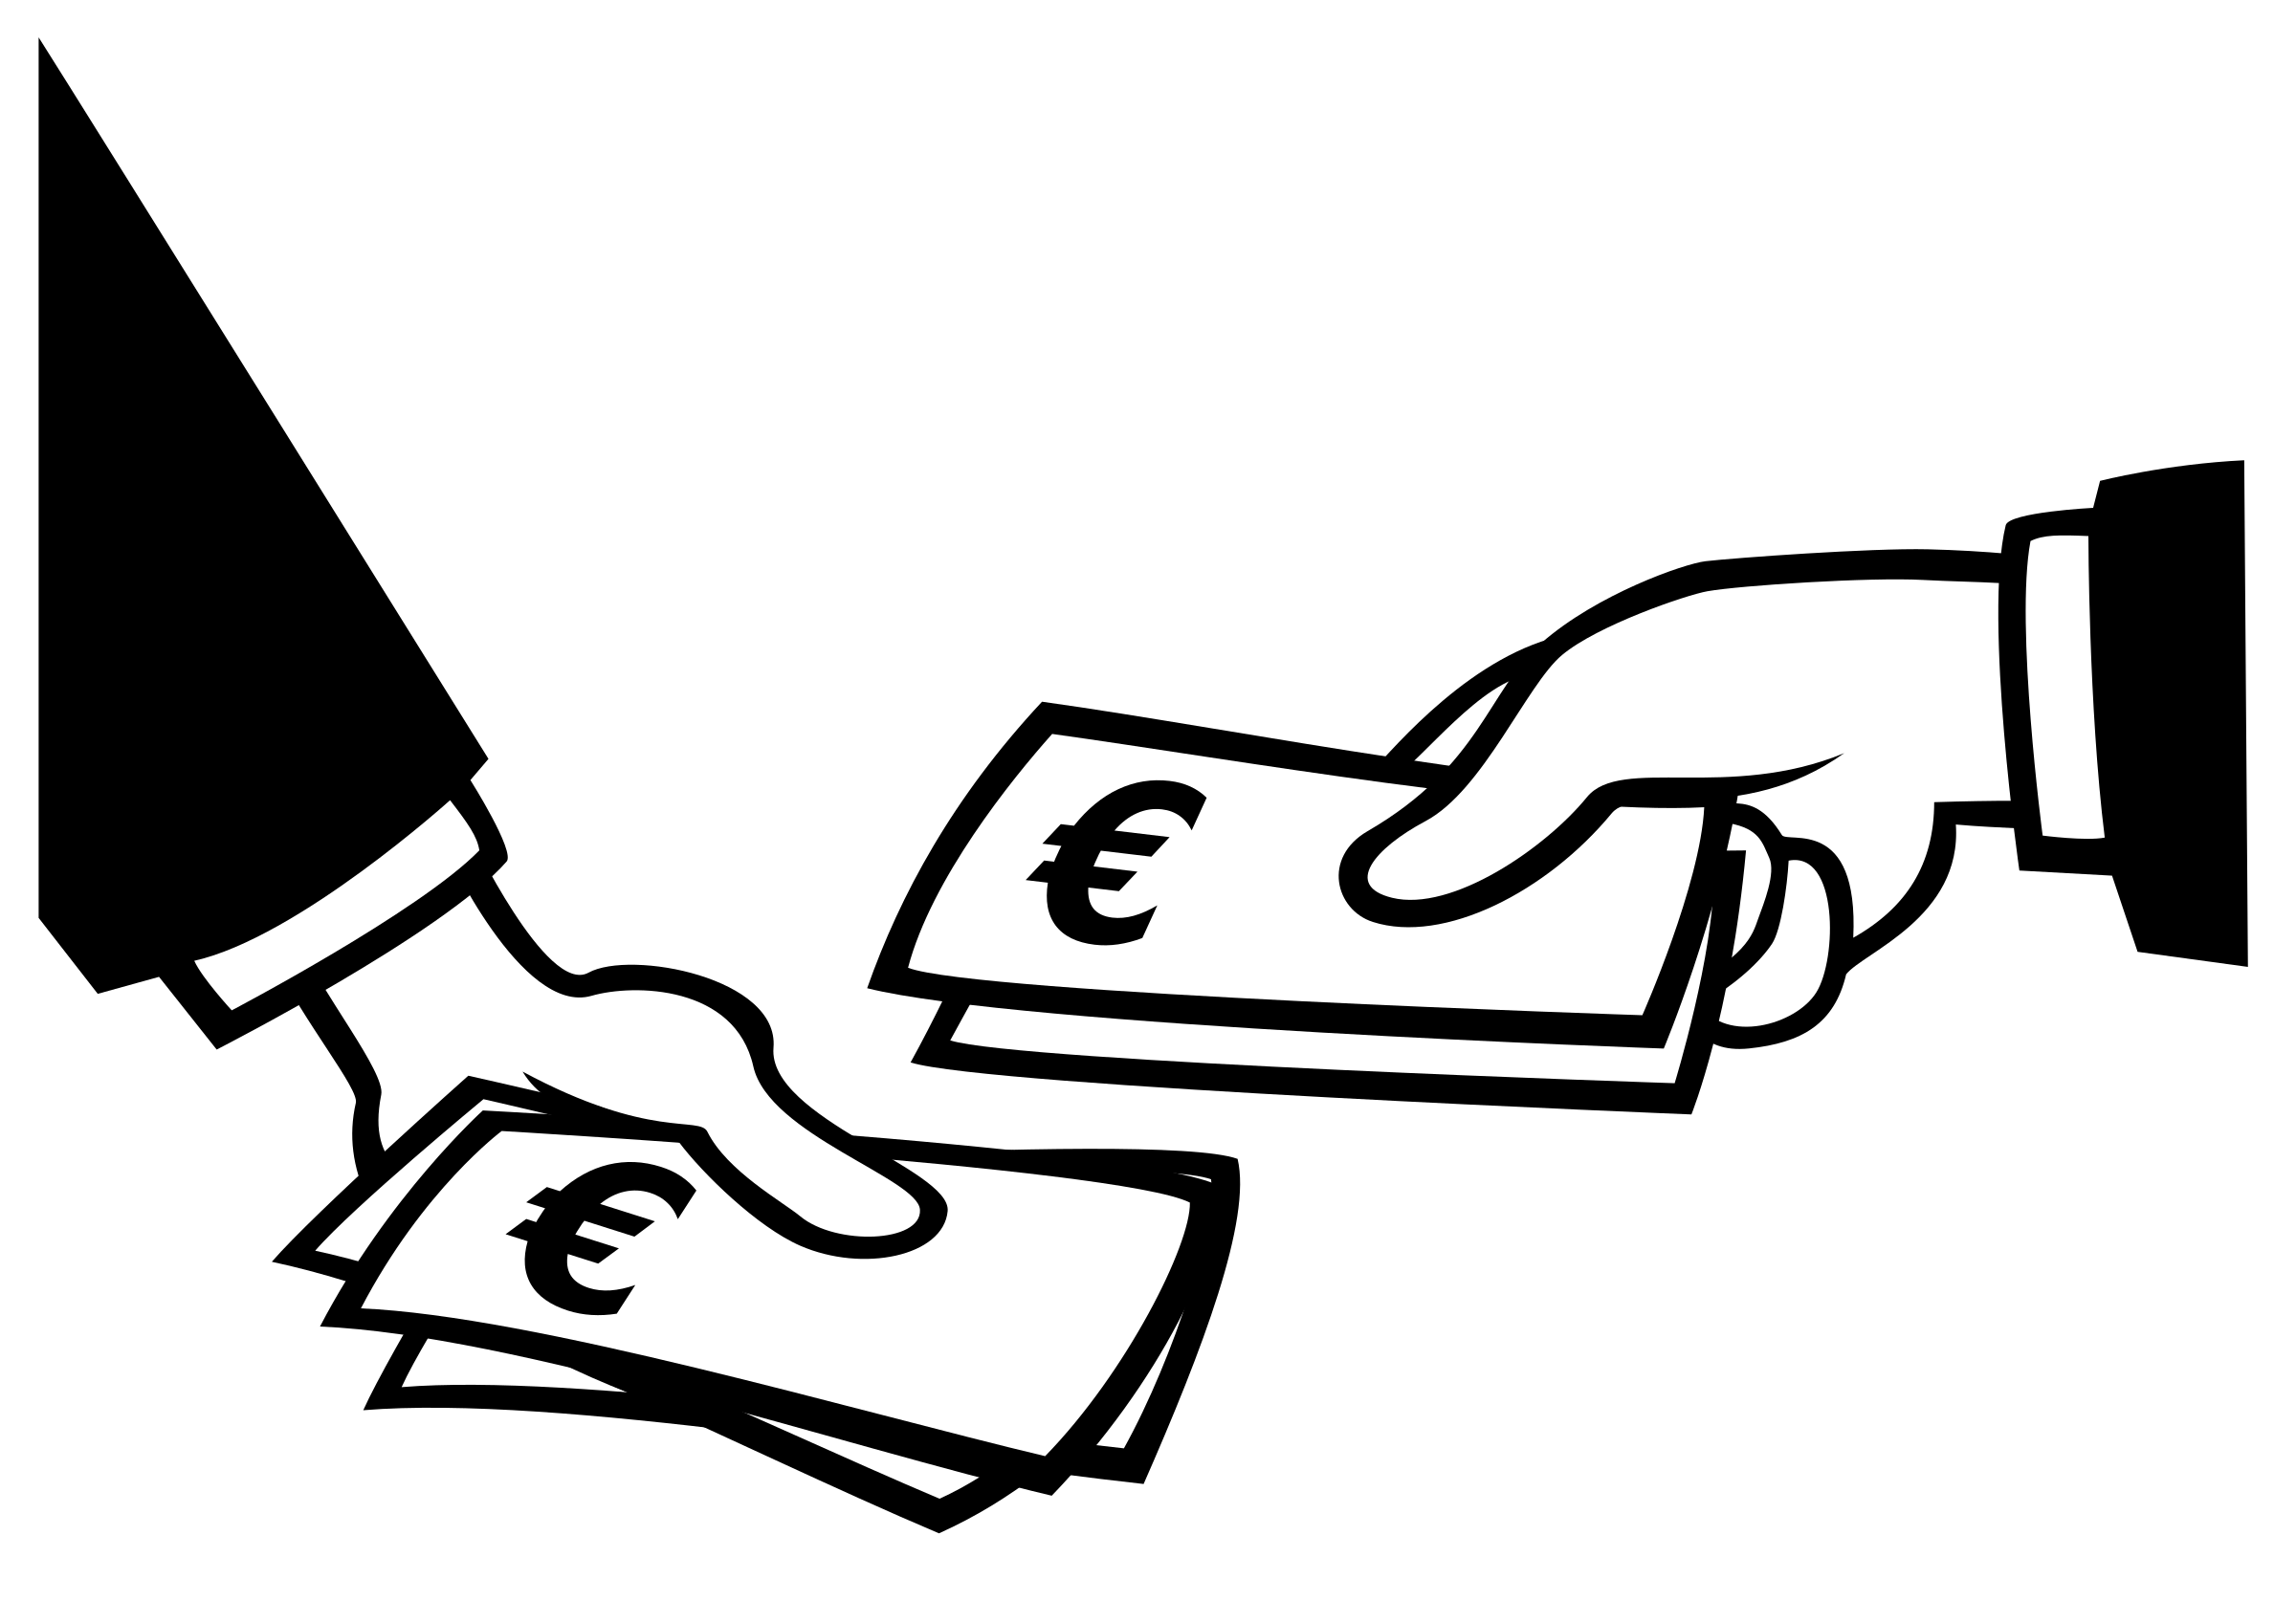 Pay money clipart.